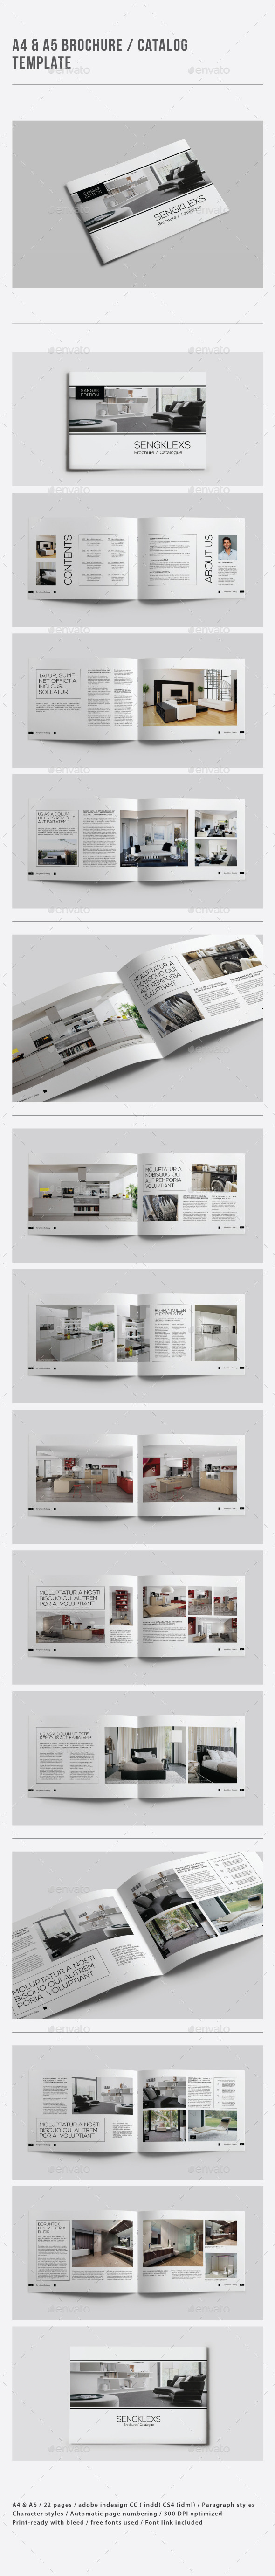 GraphicRiver A4 & A5 Brochure Catalogue Template 9182744